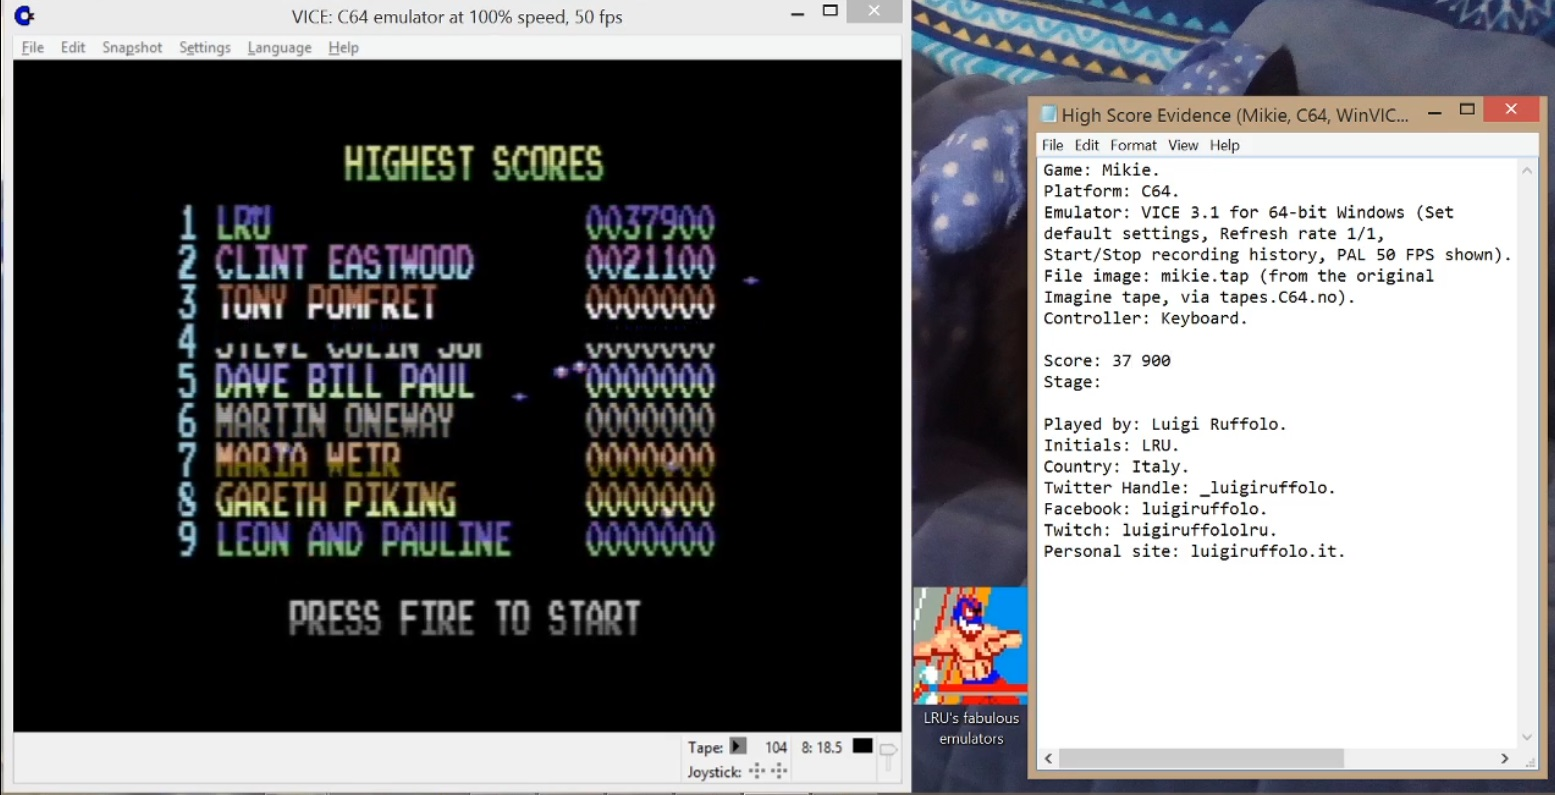 LuigiRuffolo: Mikie (Commodore 64 Emulated) 37,900 points on 2020-07-05 09:54:46